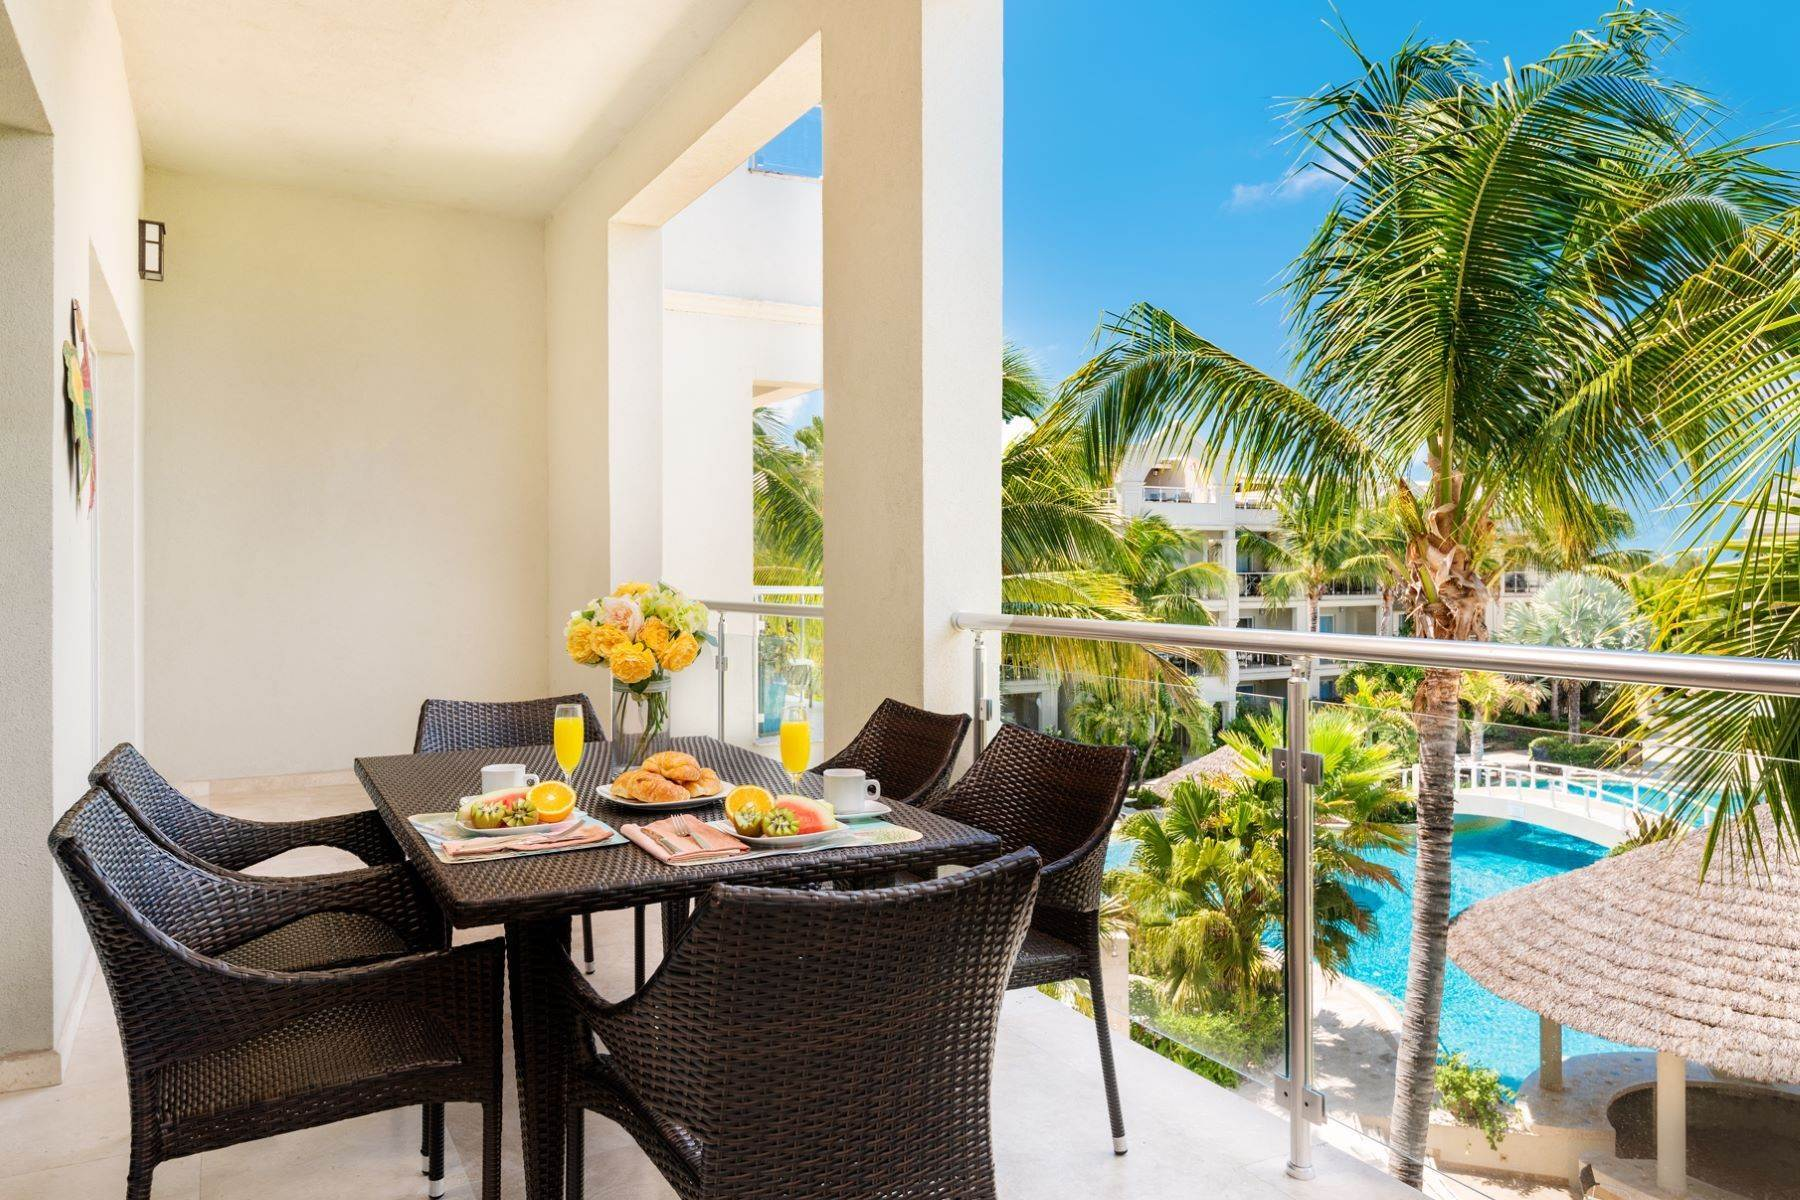 Condominiums for Sale at The Atrium Resort - Suite P3-5/6 Gardenview Leeward, Providenciales TKCA 1ZZ Turks And Caicos Islands